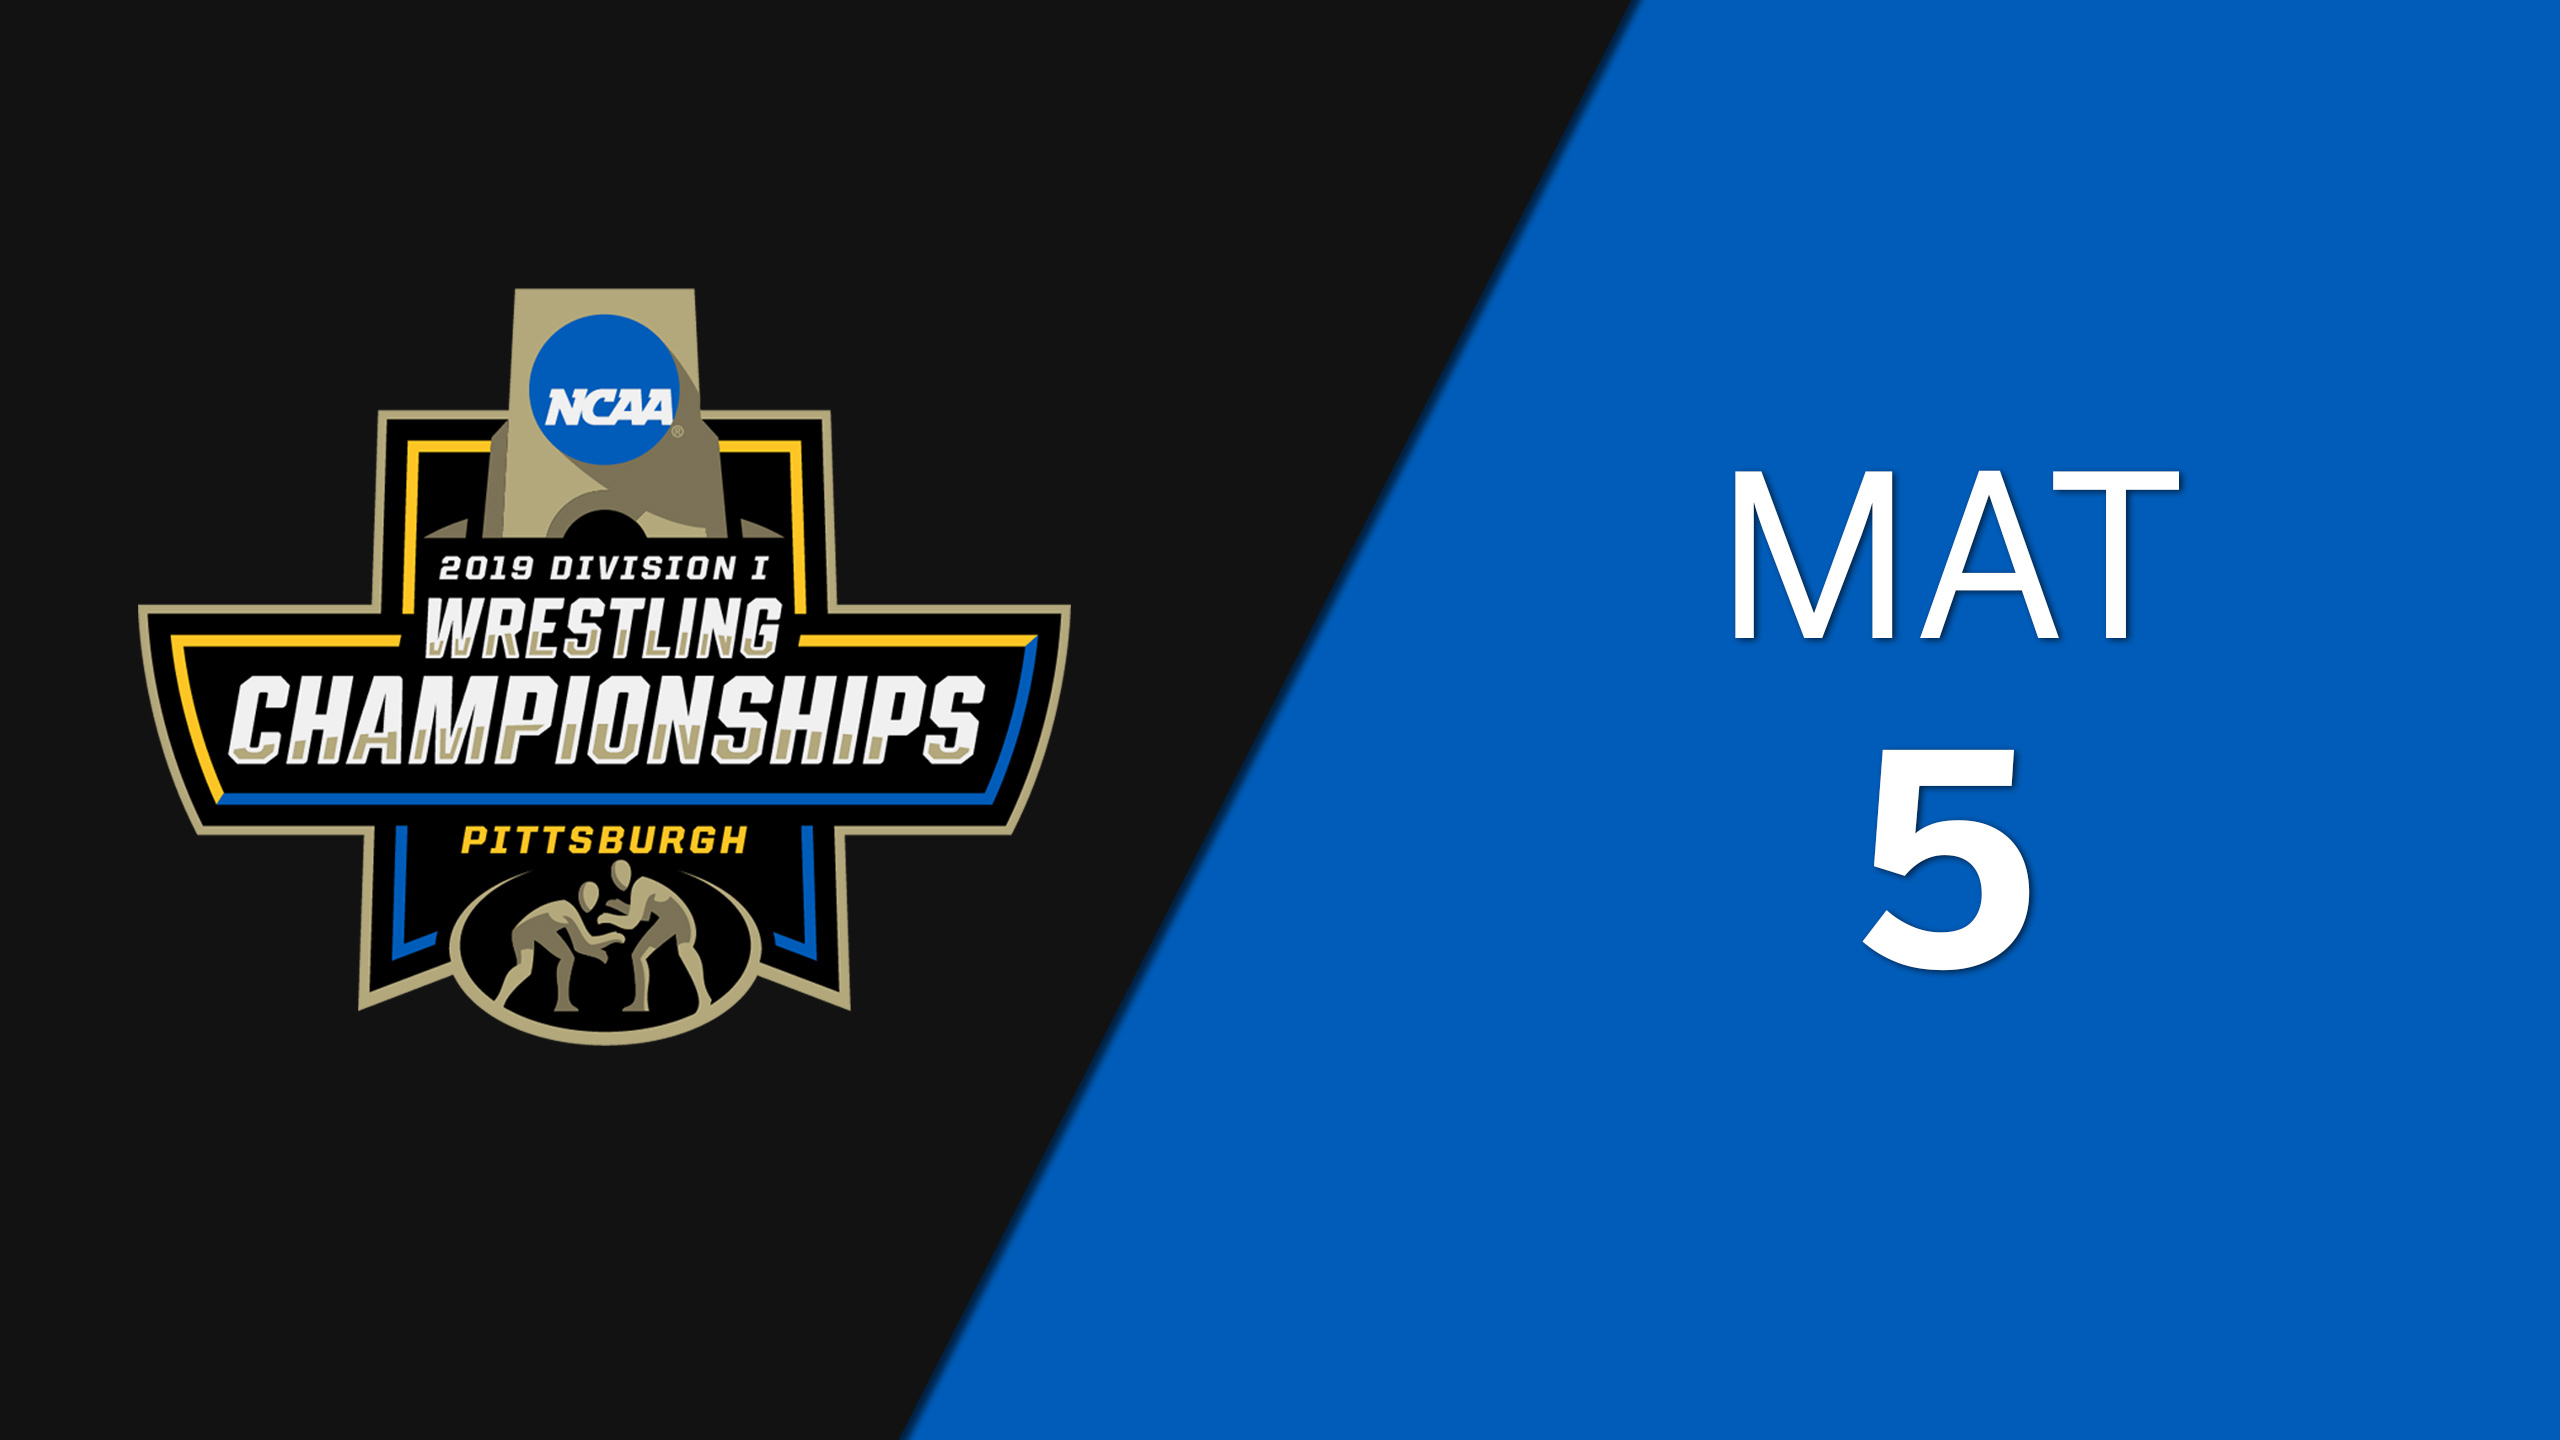 NCAA Wrestling Championship (Mat 5, First Round)